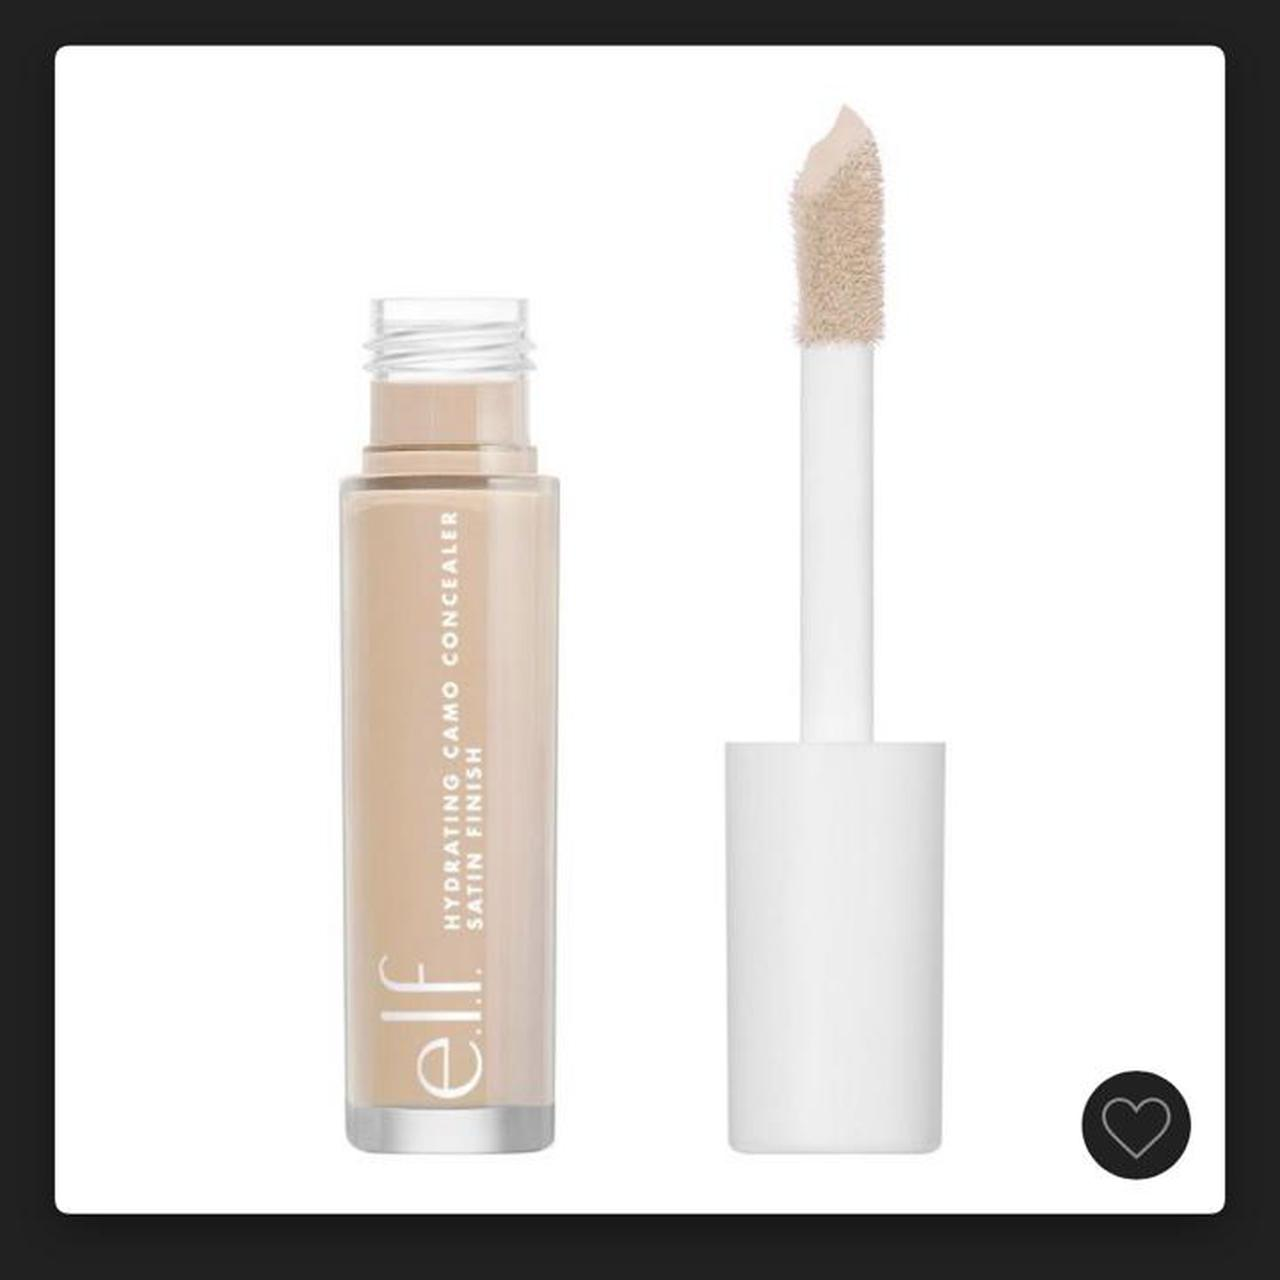 Product Image 1 - Elf hydrating camo concealer  Light